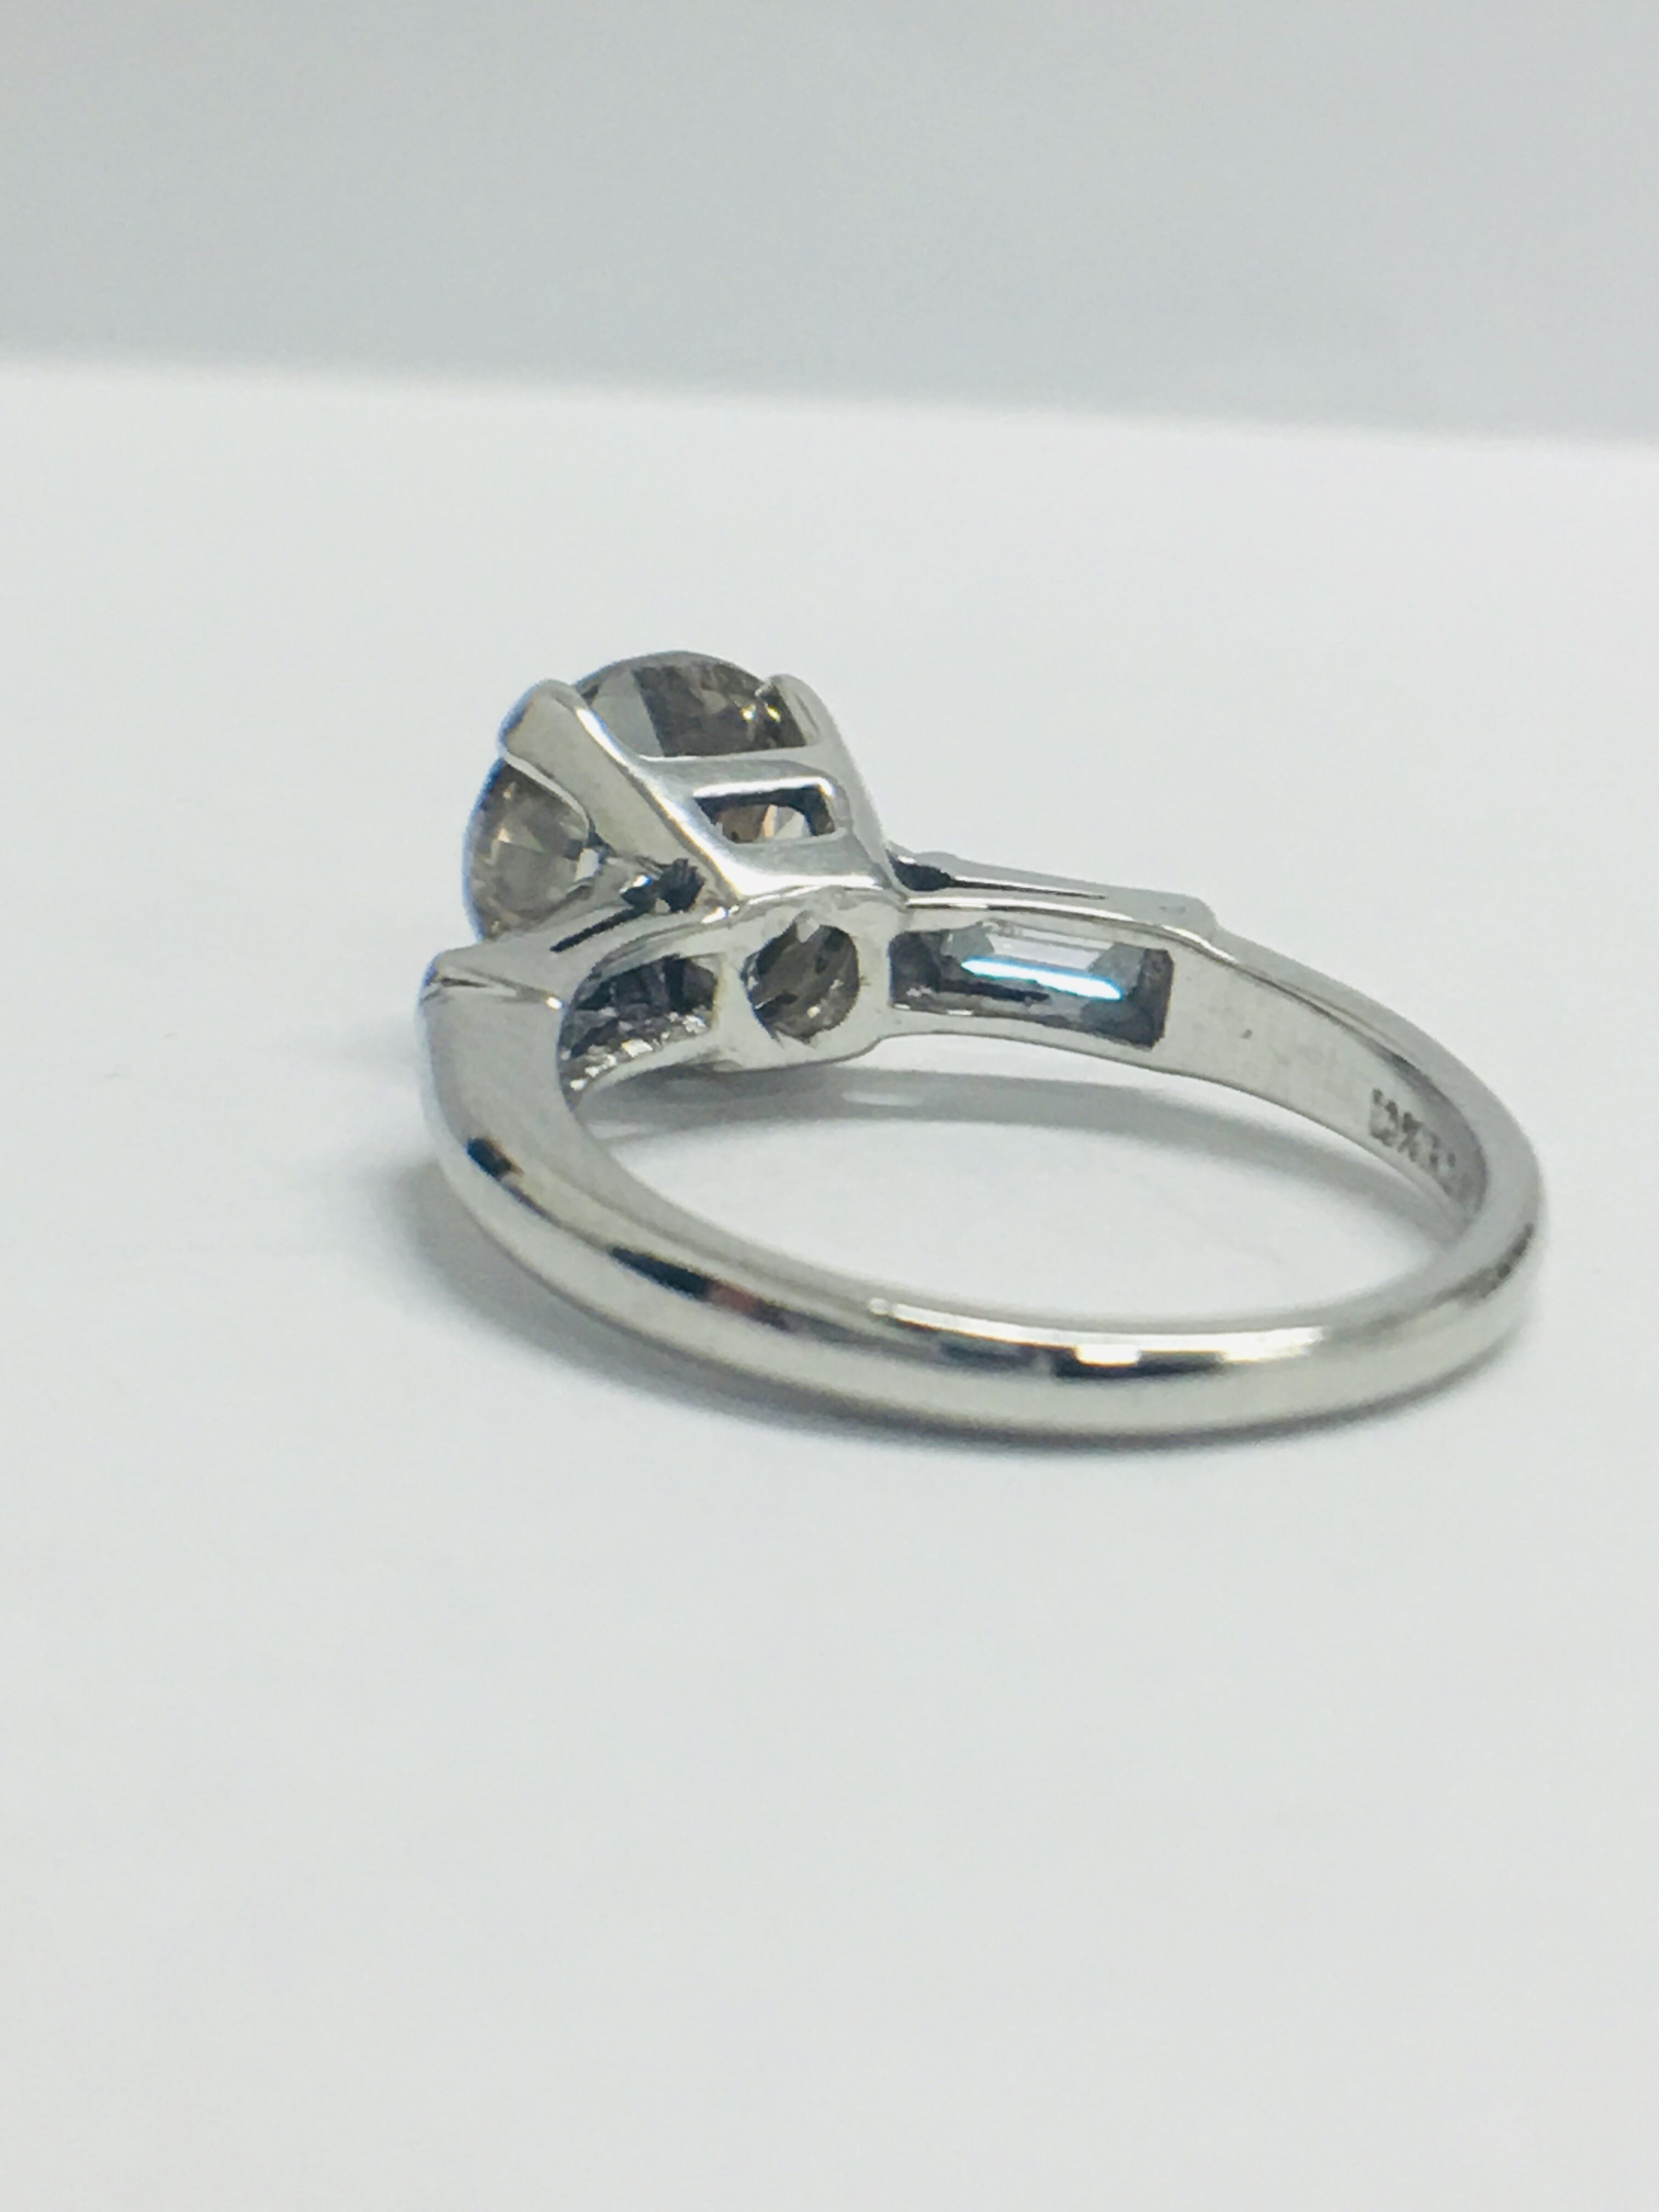 Lot 39 - 14ct White Gold Diamond Ring.